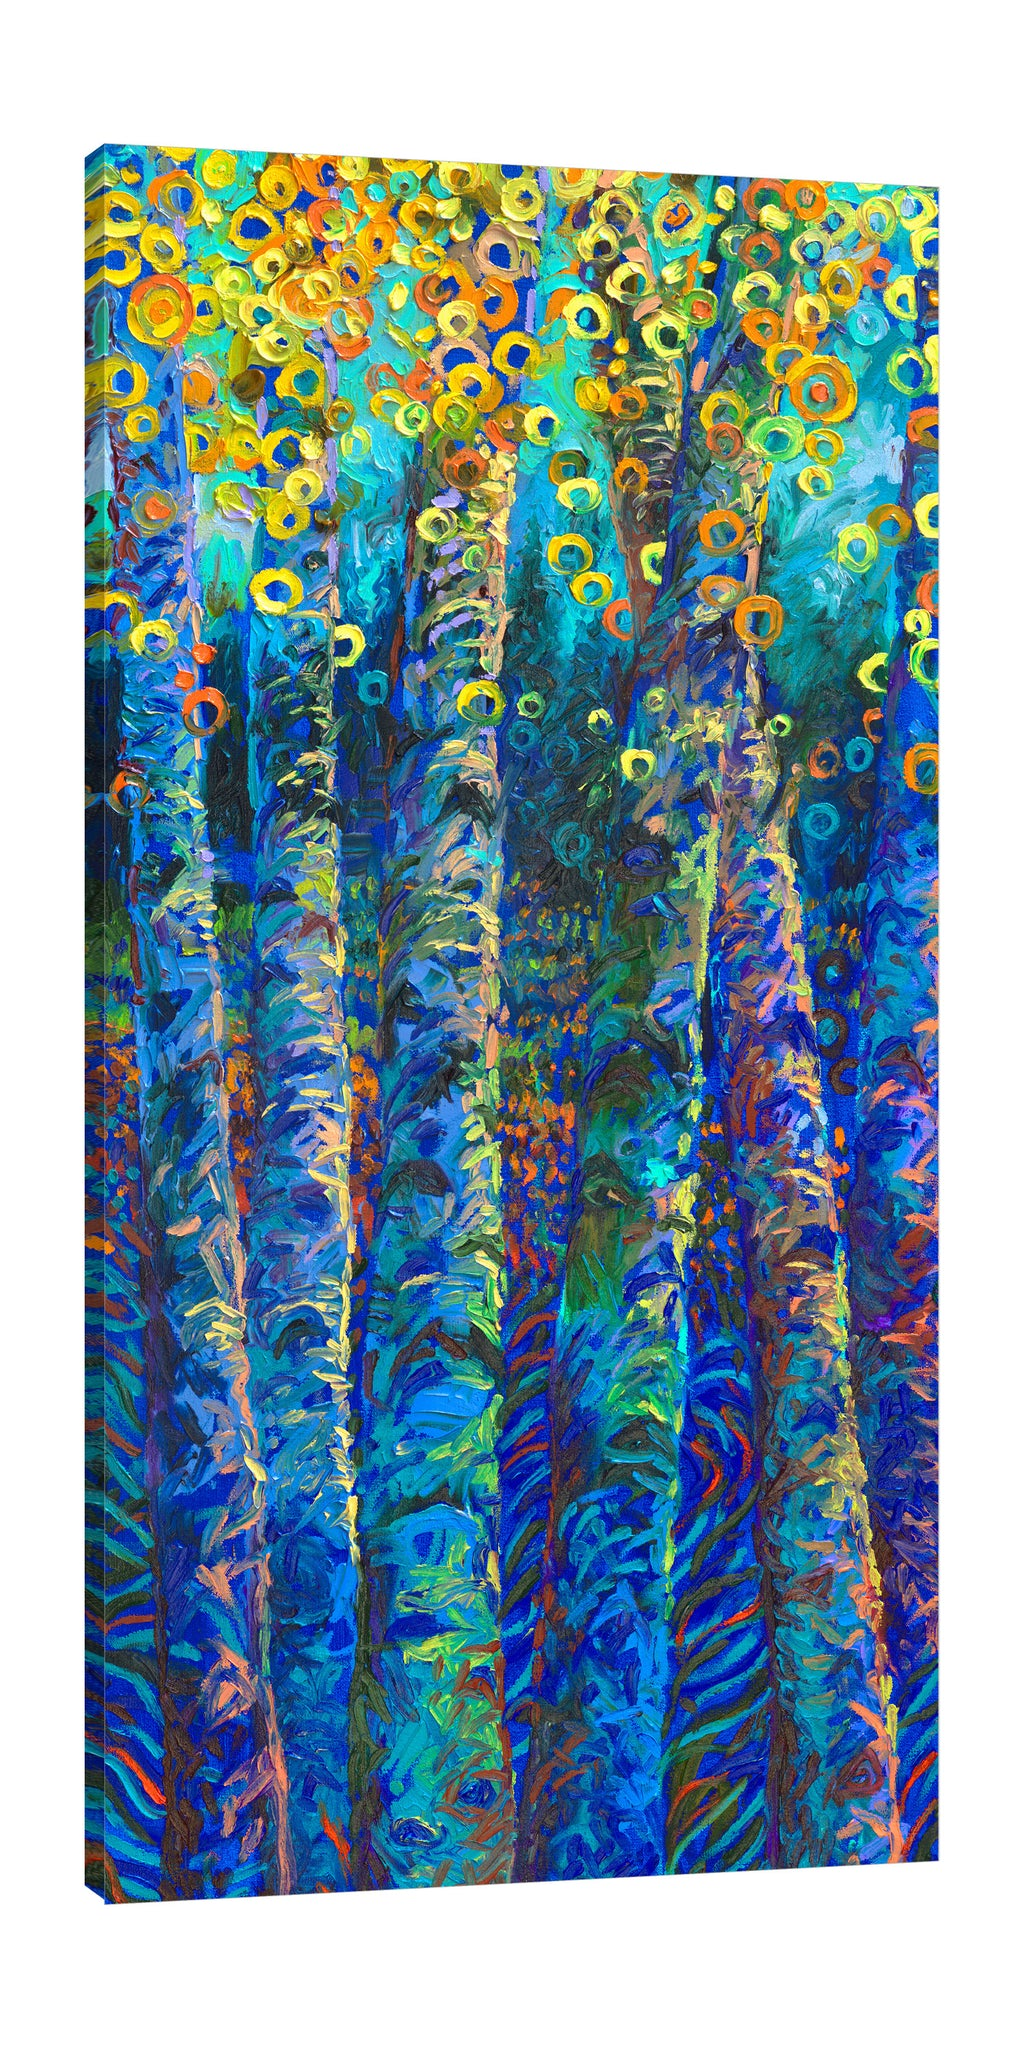 Iris-Scott,Modern & Contemporary,Landscape & Nature,florals,flowers,forests,botanical,leaves,